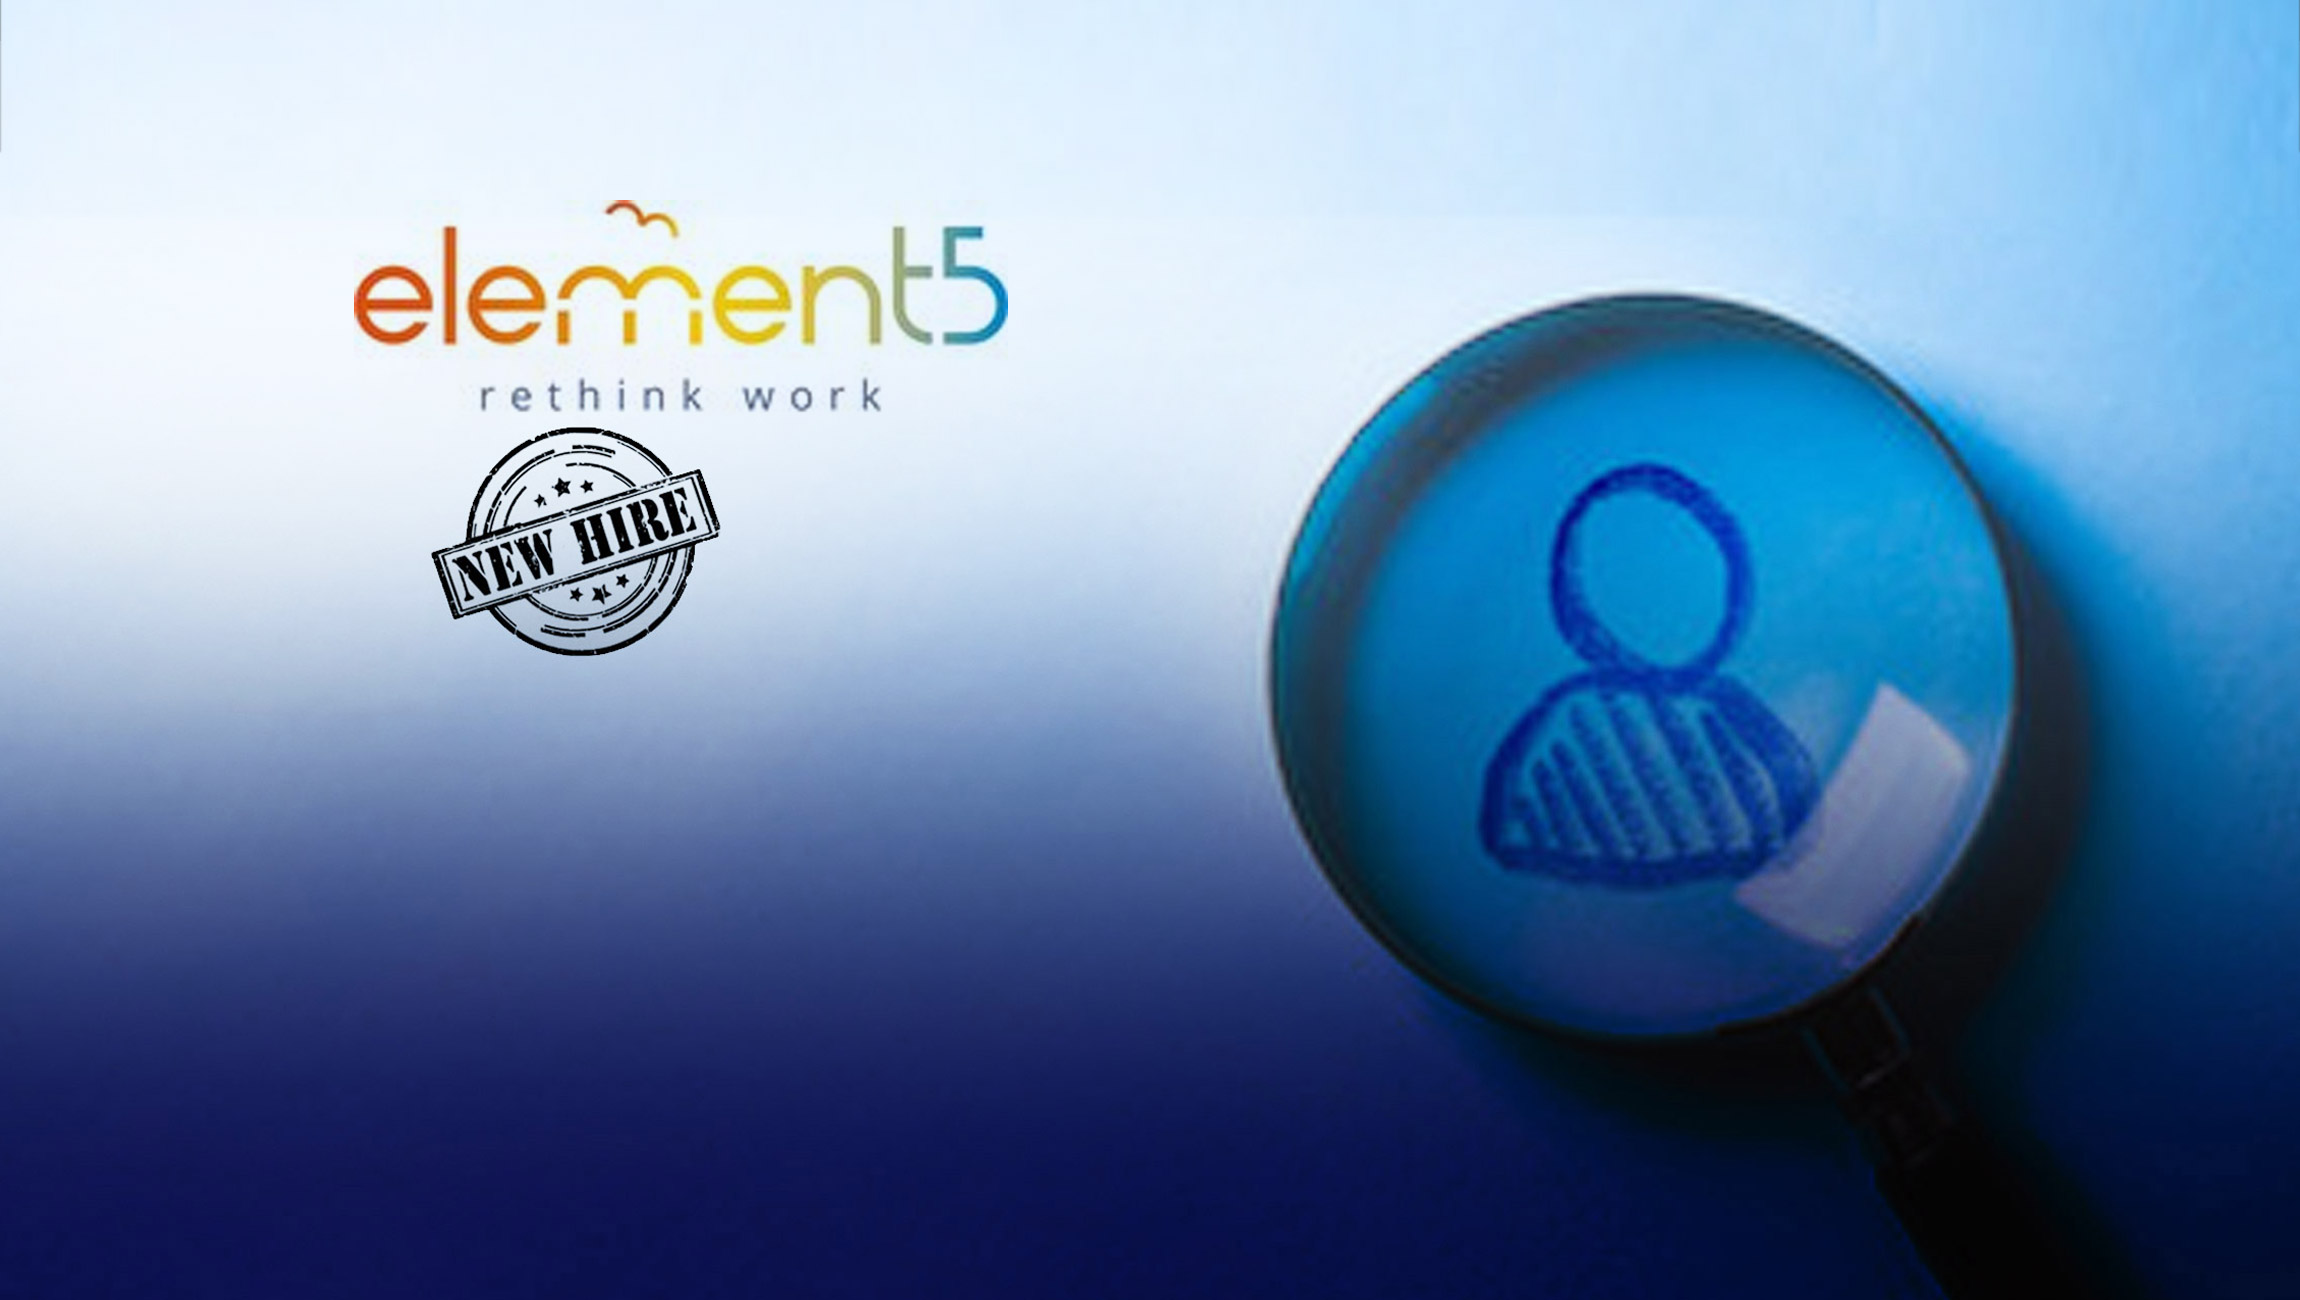 Element5-announces-the-appointment-of-post-acute-care-industry-leader_-Jennifer-Maxwell-to-Board-of-Directors